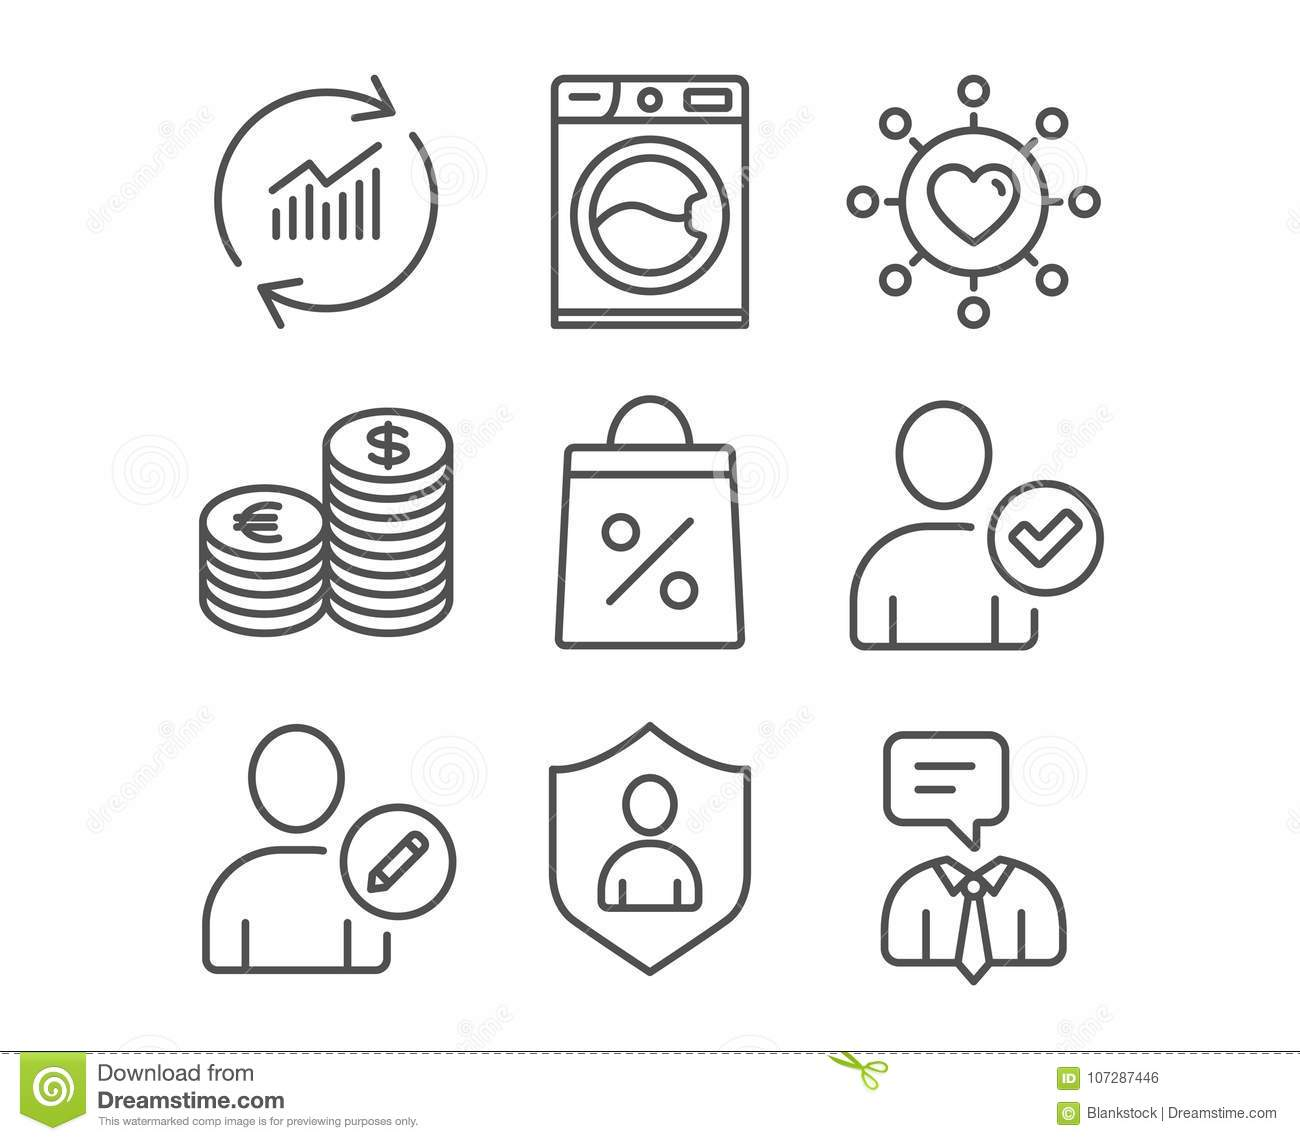 Currency, Edit user and Washing machine icons. Dating network, Security and Shopping bag signs.